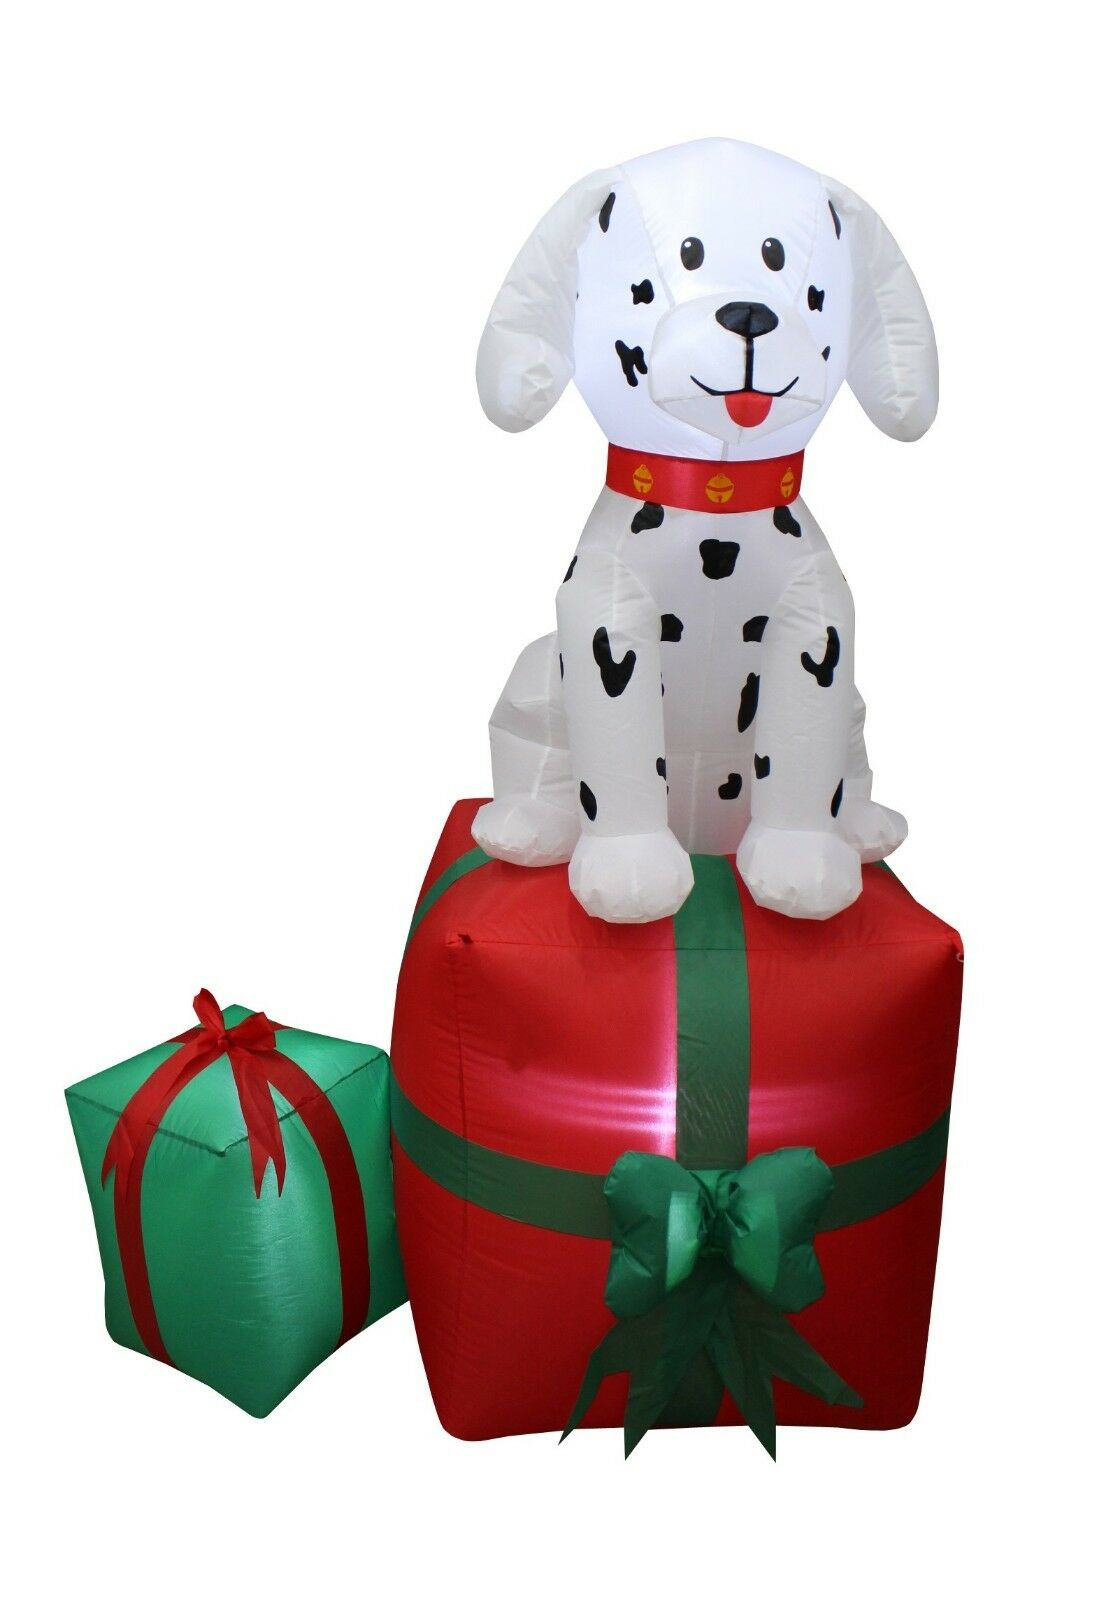 5 FOOT TALL Christmas LED Inflatable Dalmatian Puppy Dog Present ...